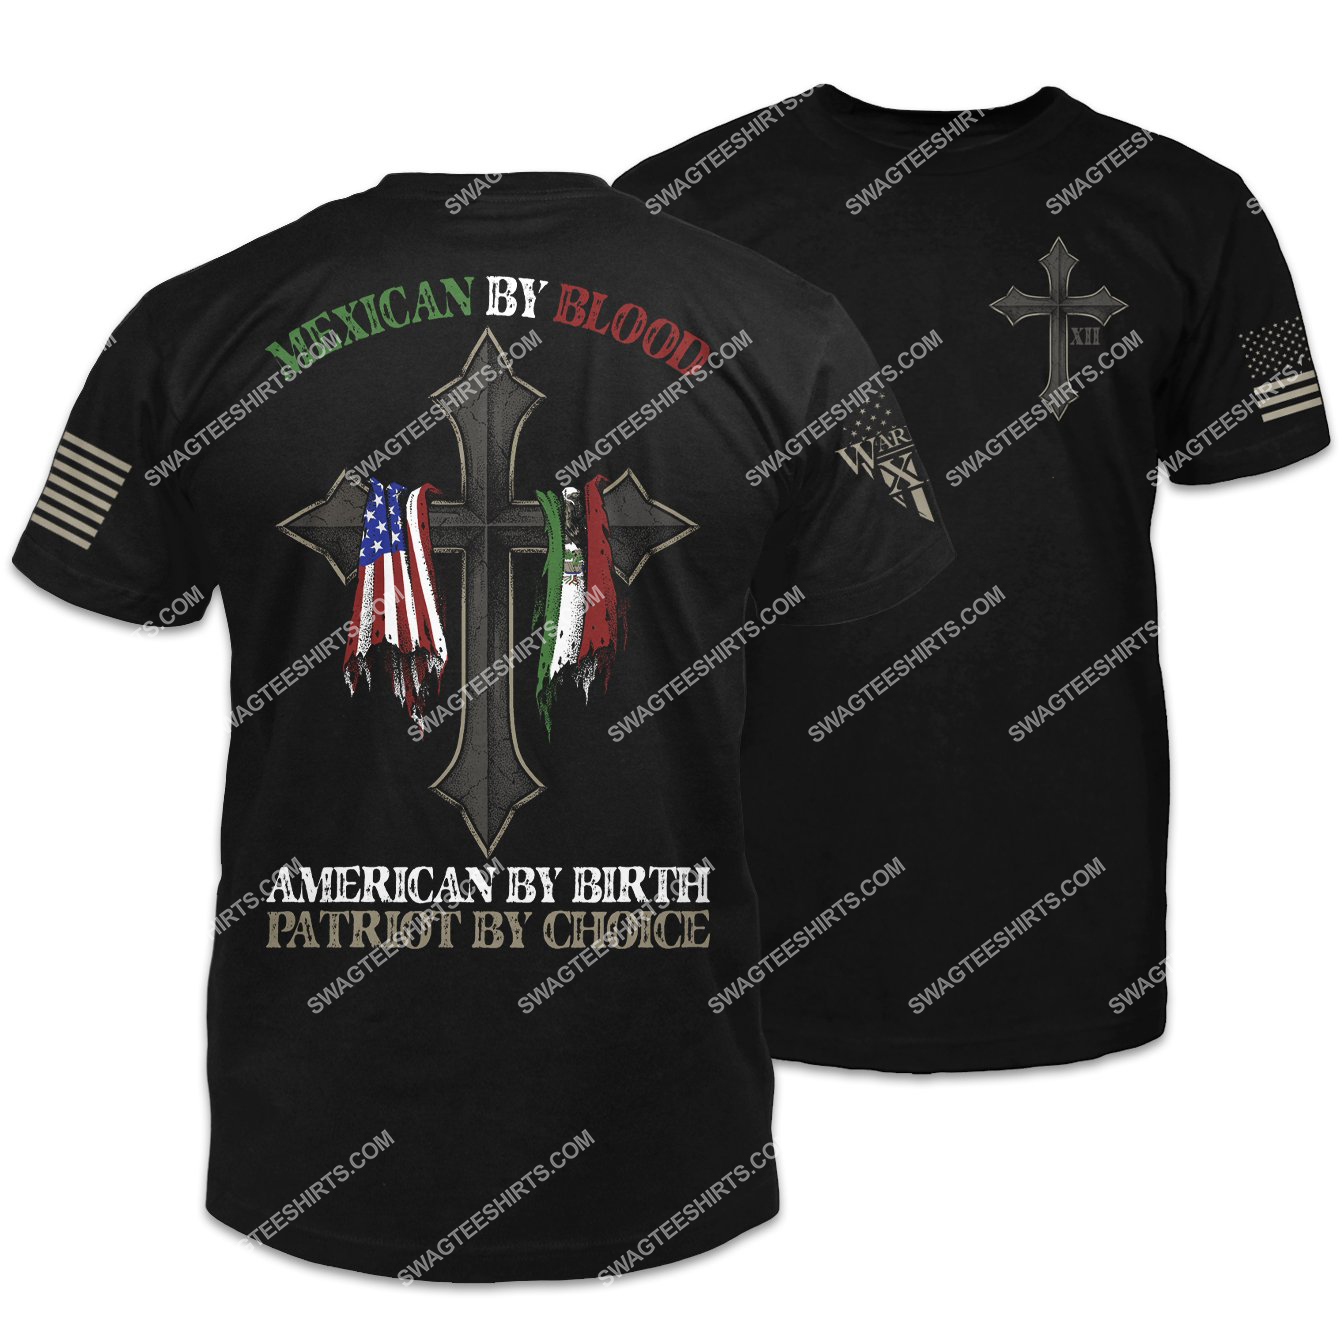 mexican by blood american by birth patriot by choice shirt 1 - Copy (3)